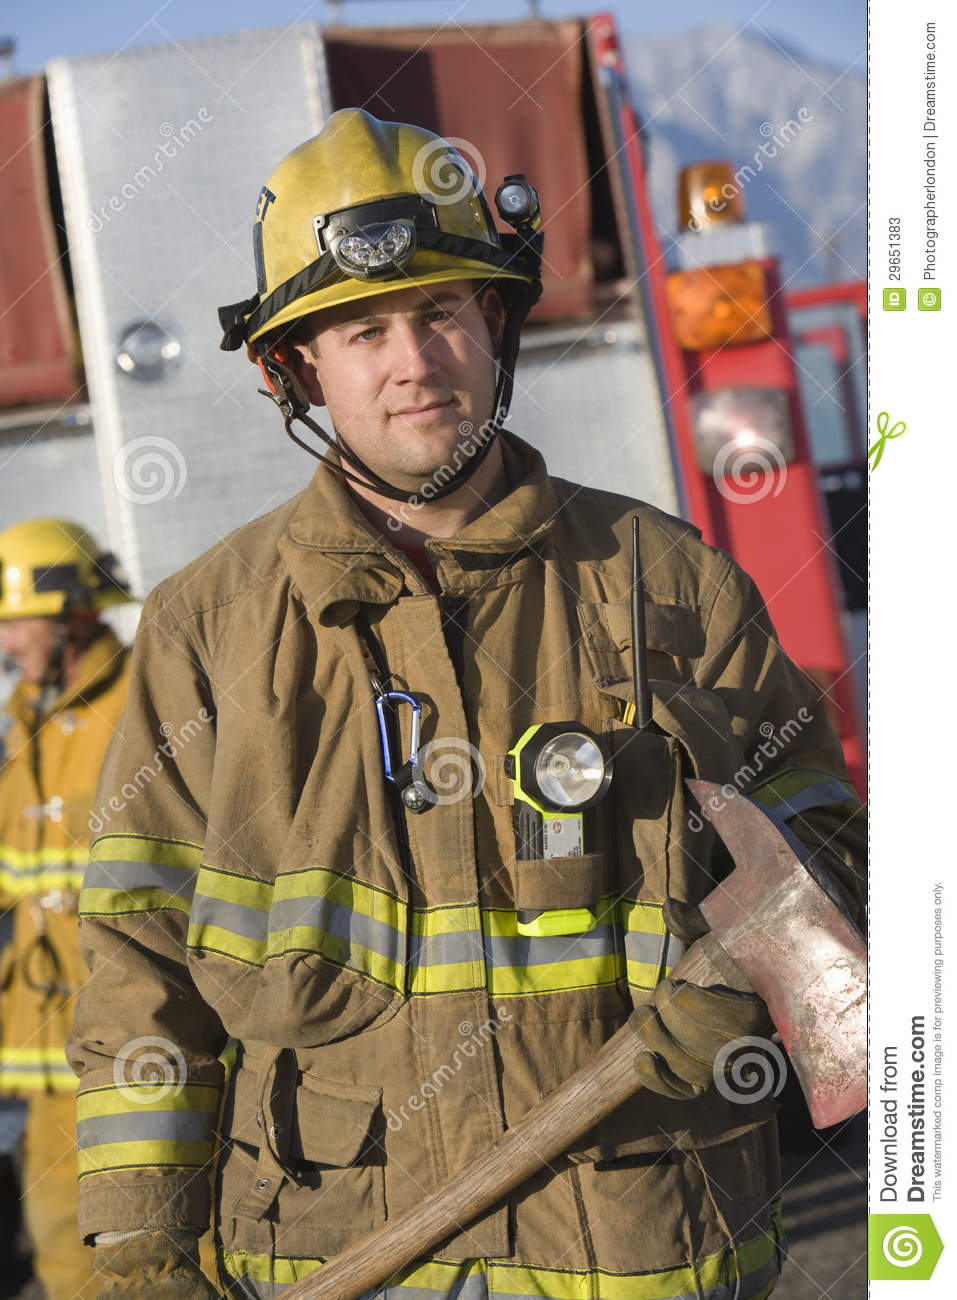 Portrait Of A Firefighter Holding Axe Stock Photos - Image ...